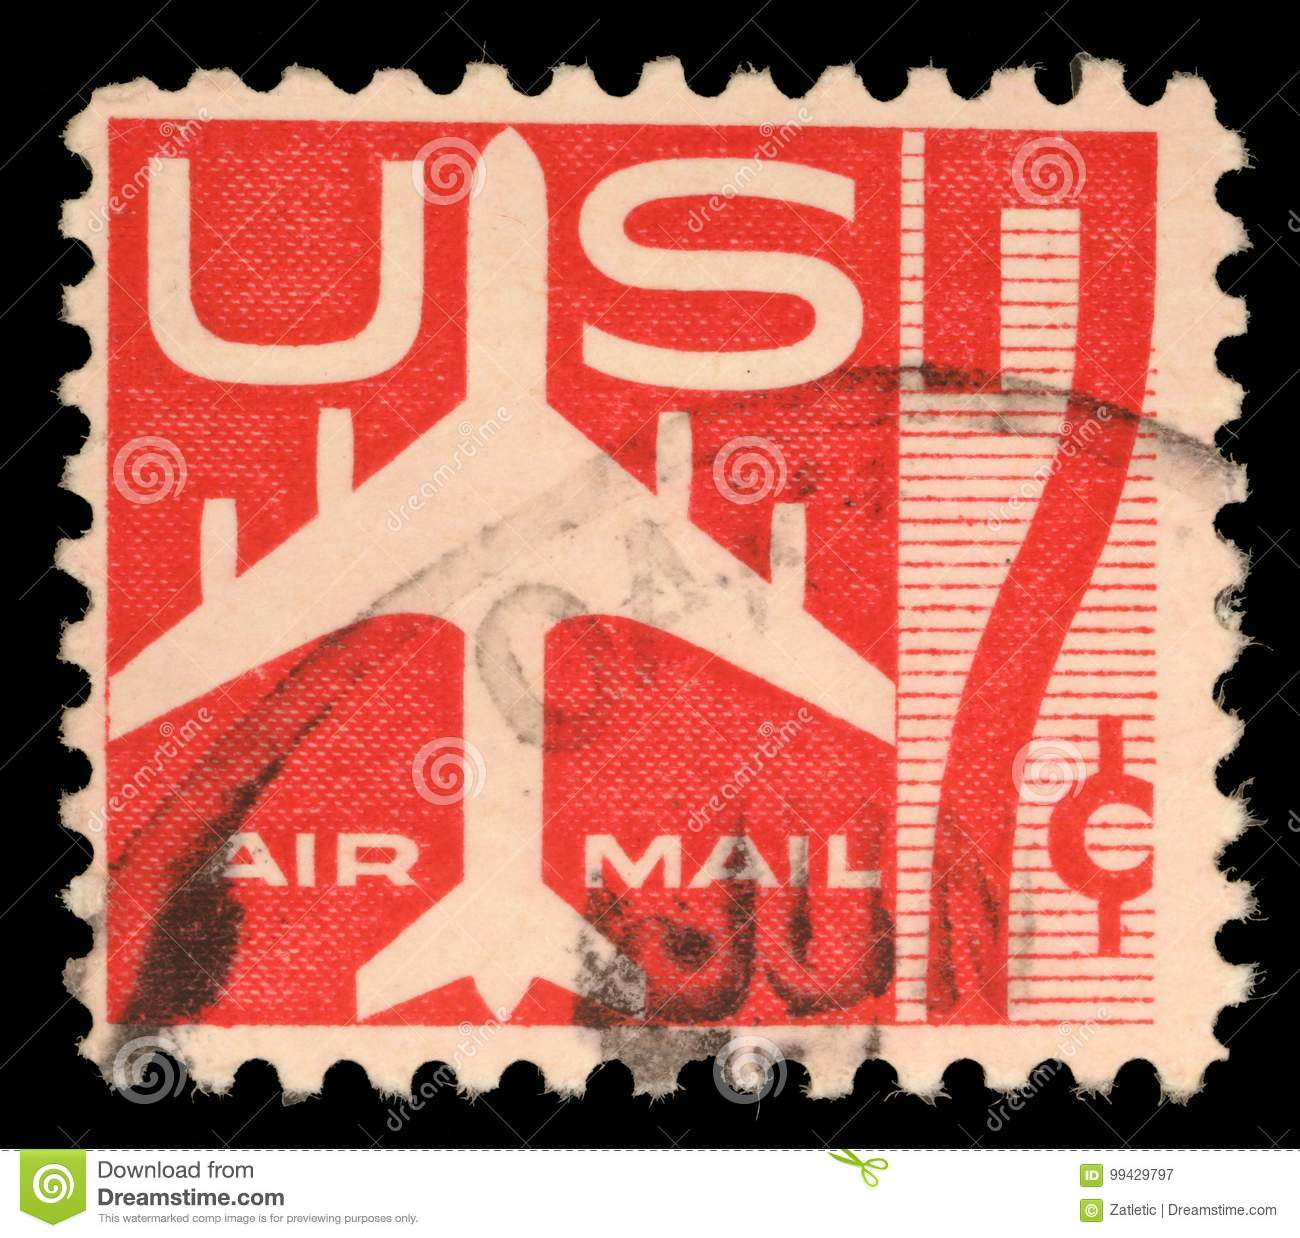 Stamp Printed In Us Showing Air Mail Symbols And The Print Air Mail